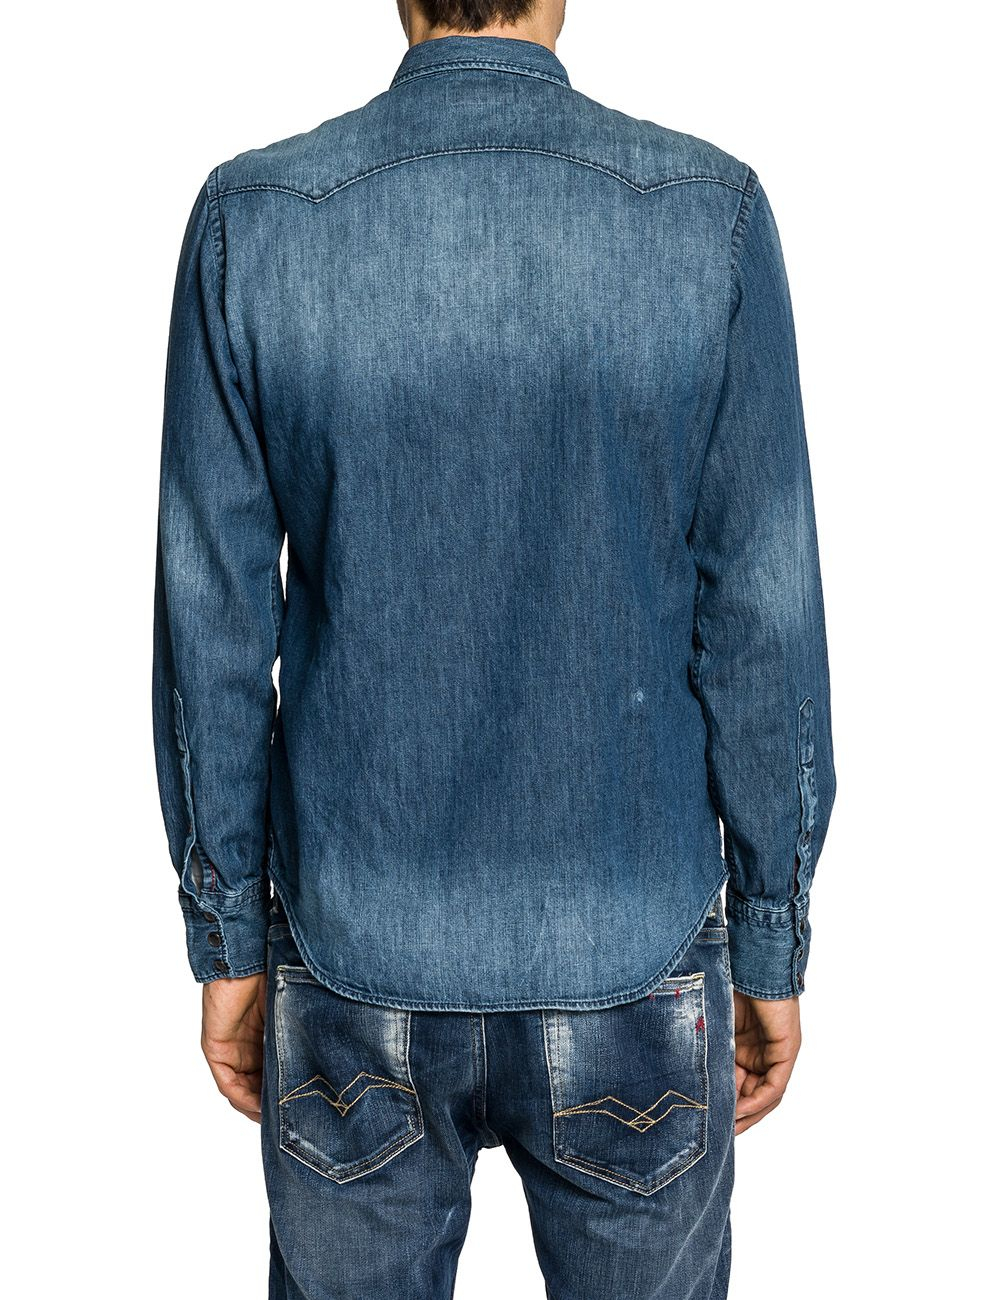 Replay Double Pocket Denim Shirt In Blue For Men Lyst